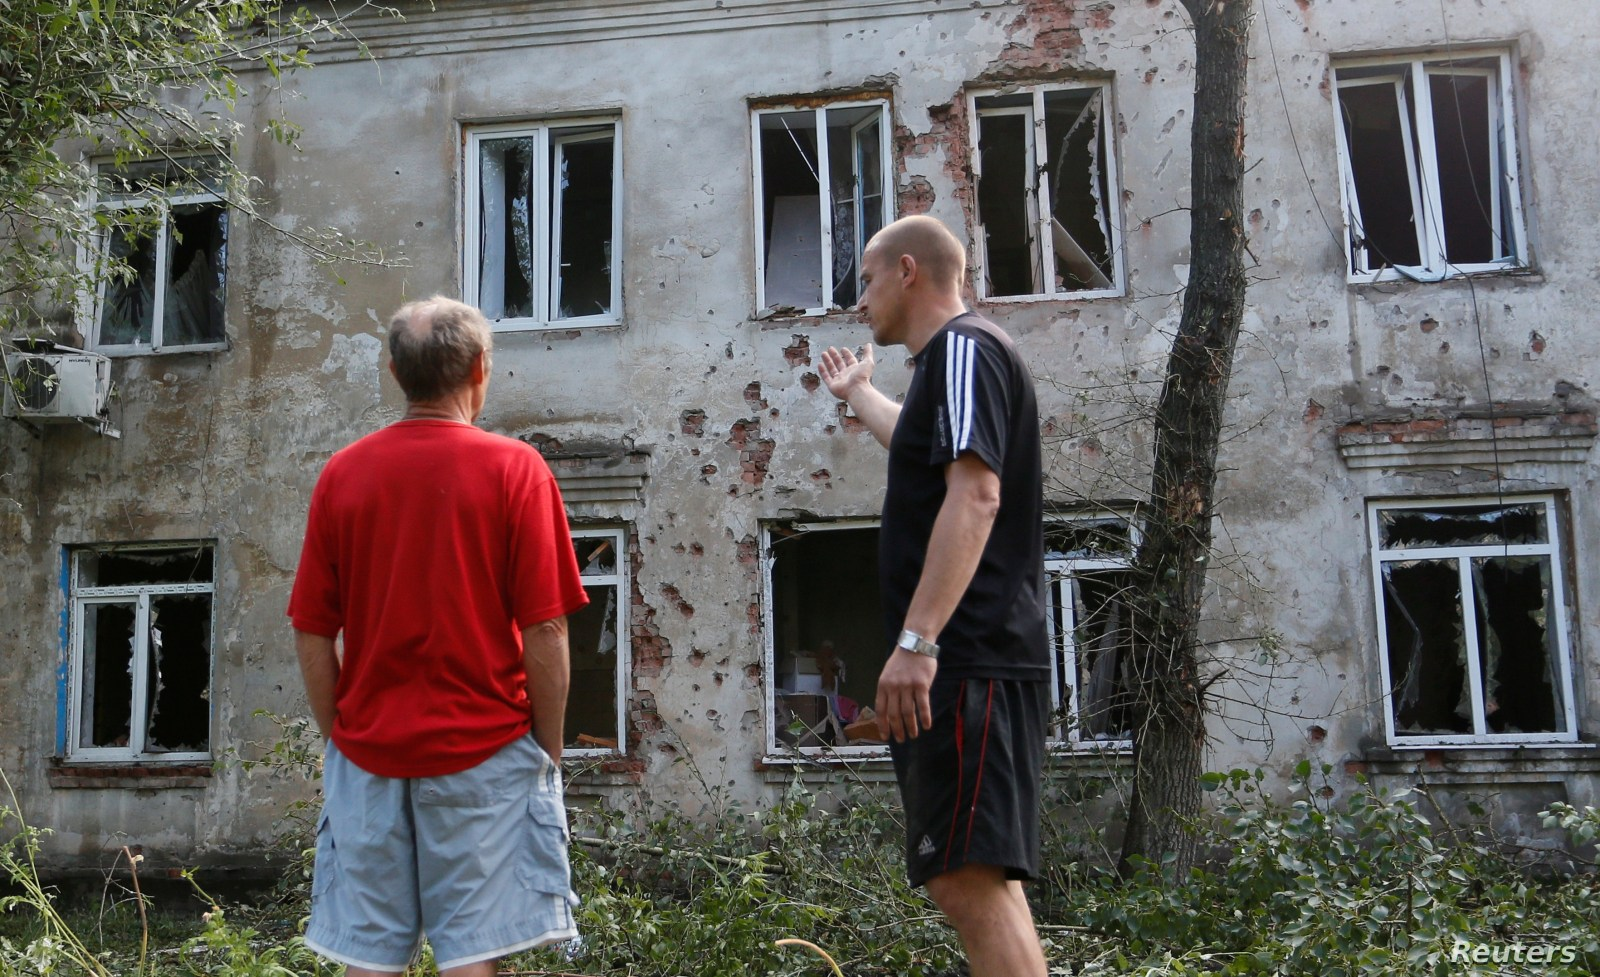 FILE - Men speak outside a residential building, which locals said was damaged during a recent shelling, in the suburb of the rebel-controlled city of Donetsk, Ukraine, June 28, 2019.